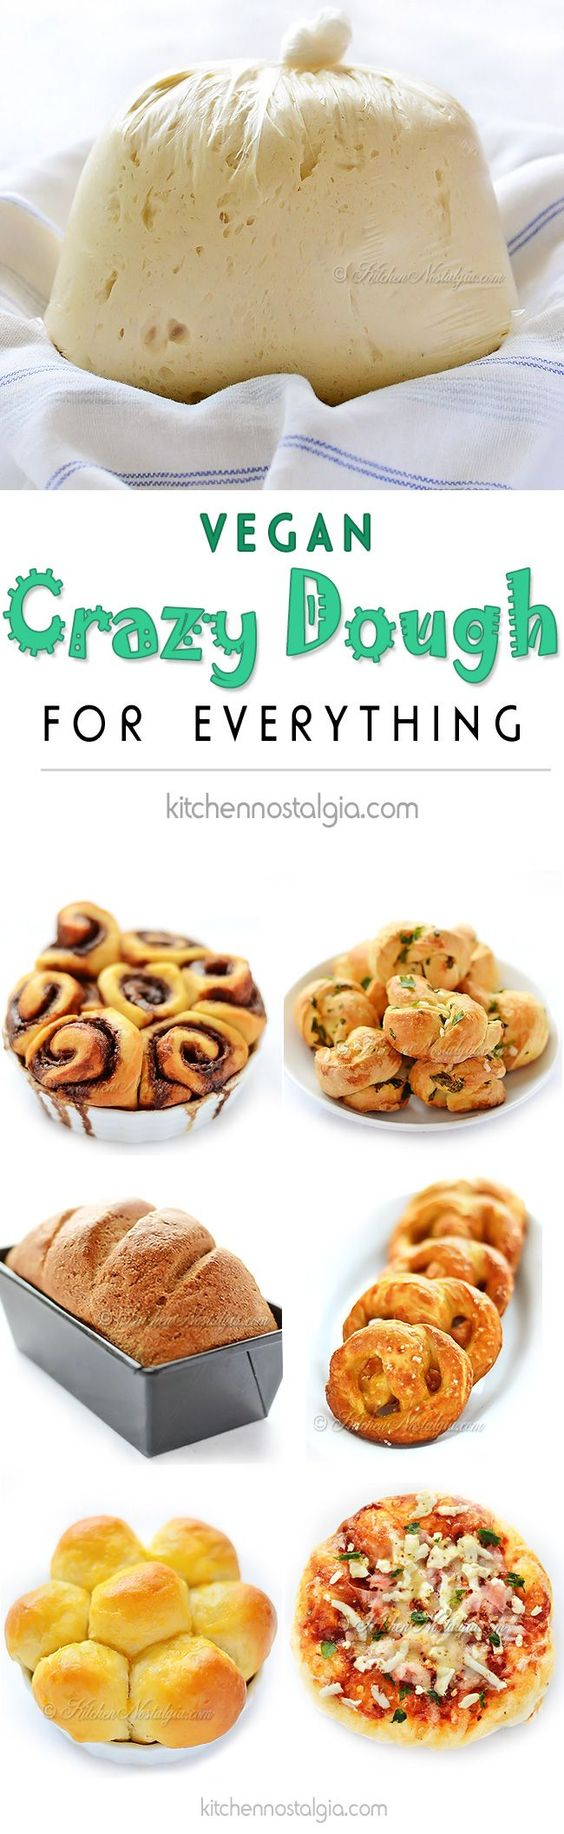 Vegan Crazy Dough for Everything - make one miracle dough, keep it in the fridge and use it for anything you like: pizza, cinnamon rolls, dinner rolls, pretzels, garlic knots, focaccia, bread...